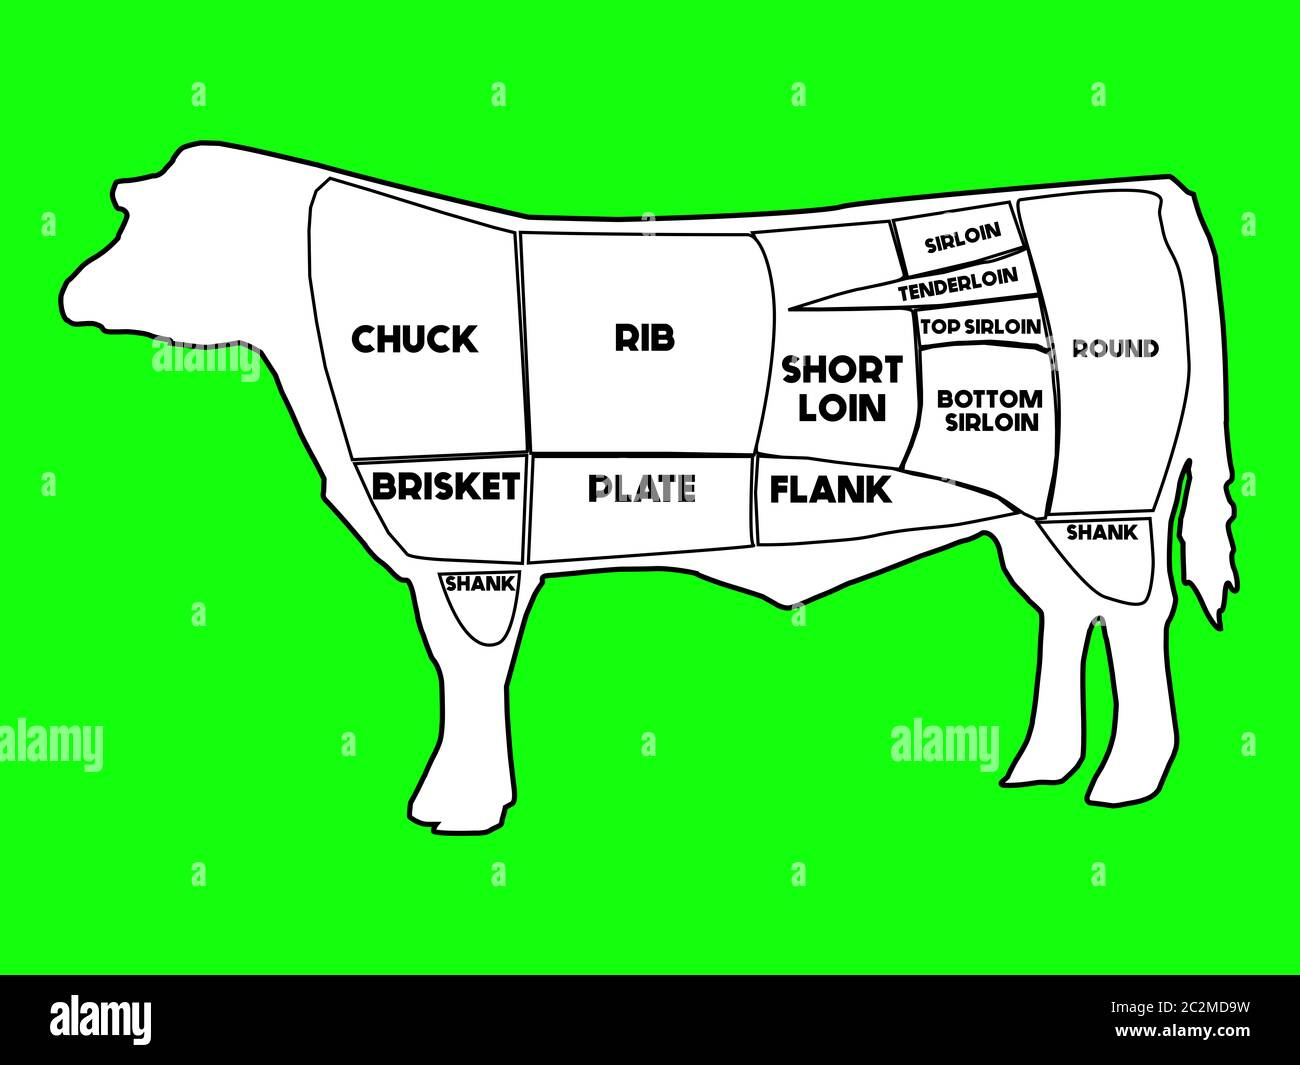 Cuts Of Beef Diagram High Resolution Stock Photography and Images - AlamyAlamy